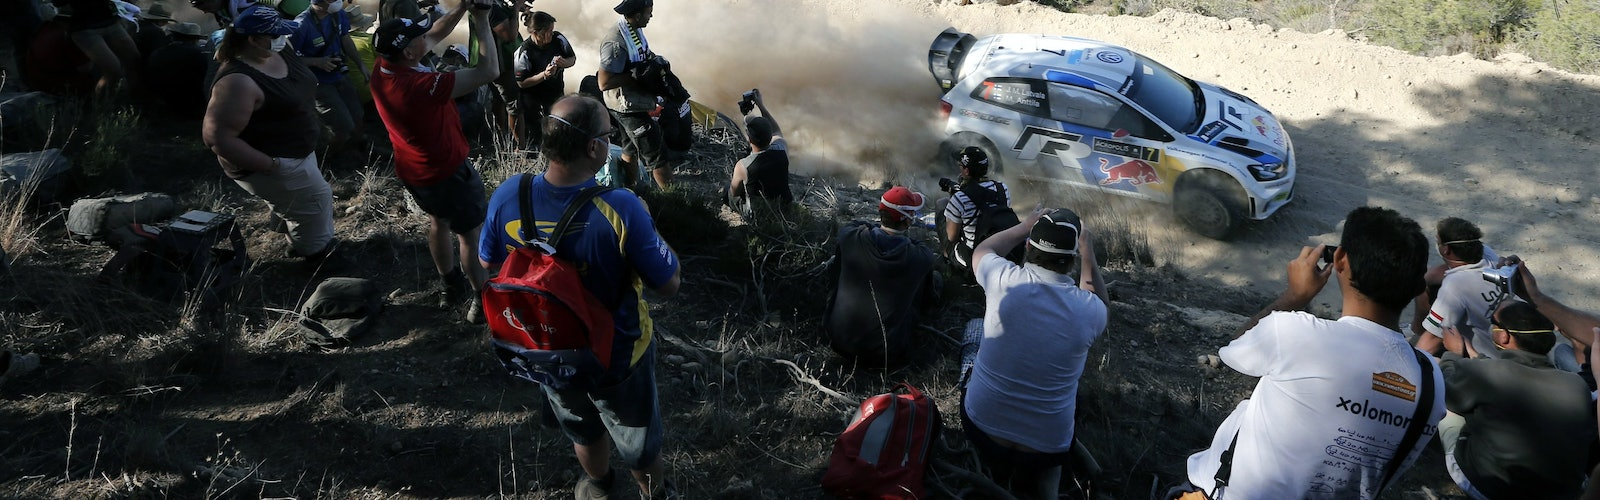 Jari Matti Latvala – Action